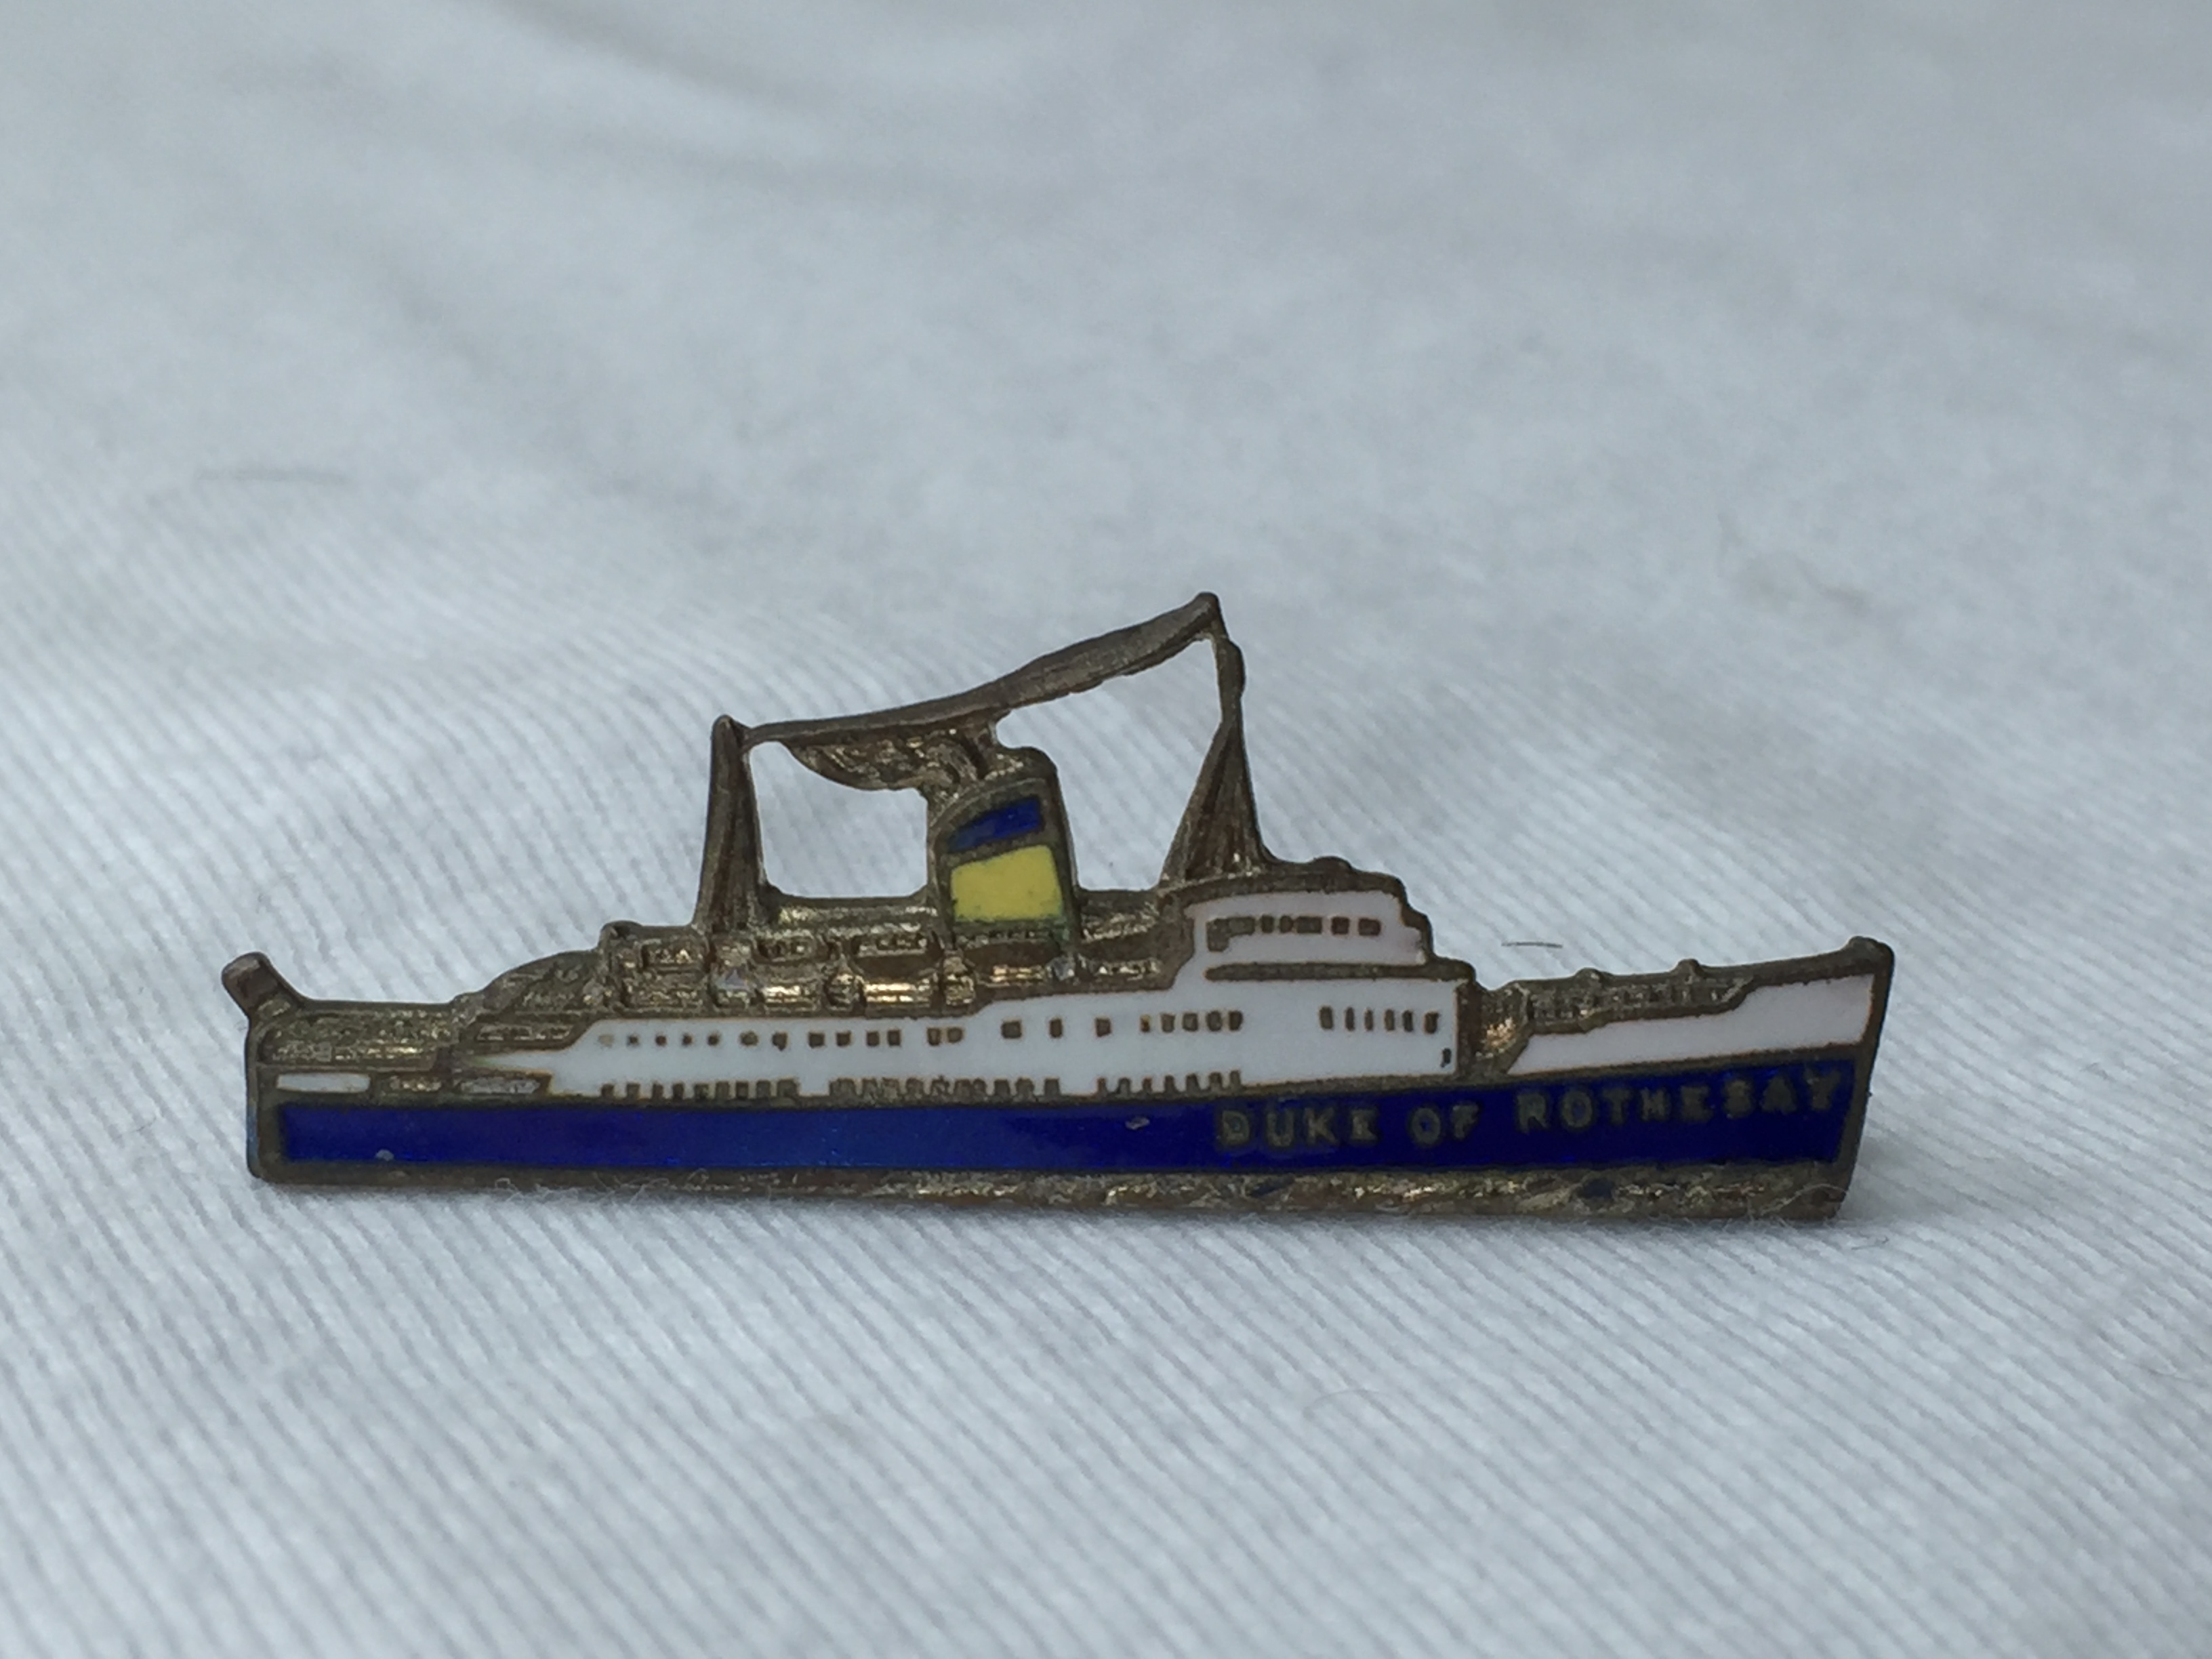 SHIP SHAPE LAPEL PIN FROM THE FISHGUARD-ROSSLAKE FERRY CROSSING VESSEL THE DUKE OF ROTHESAY